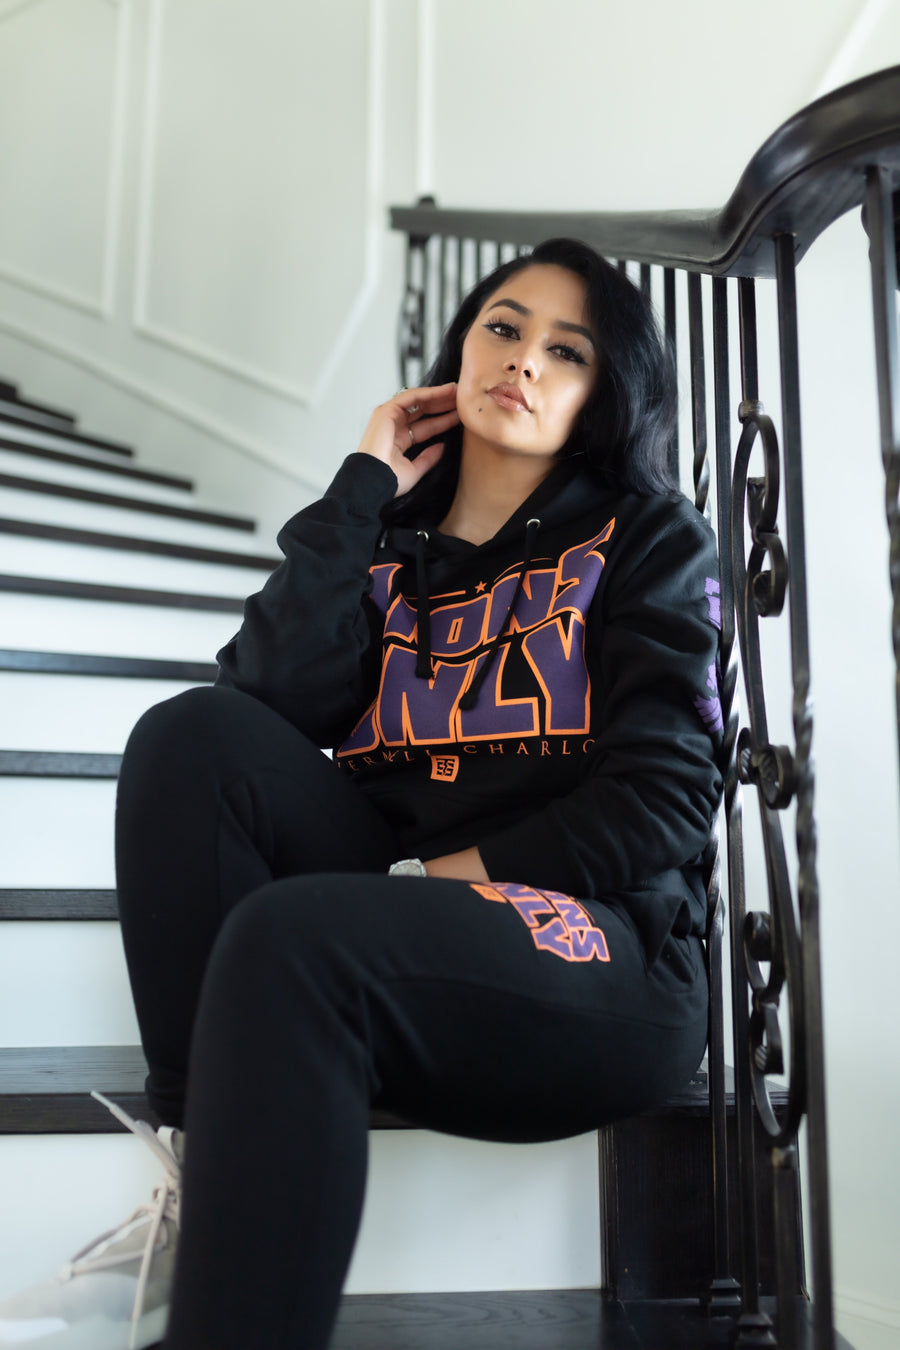 Purple/Orange/Black Track Suits